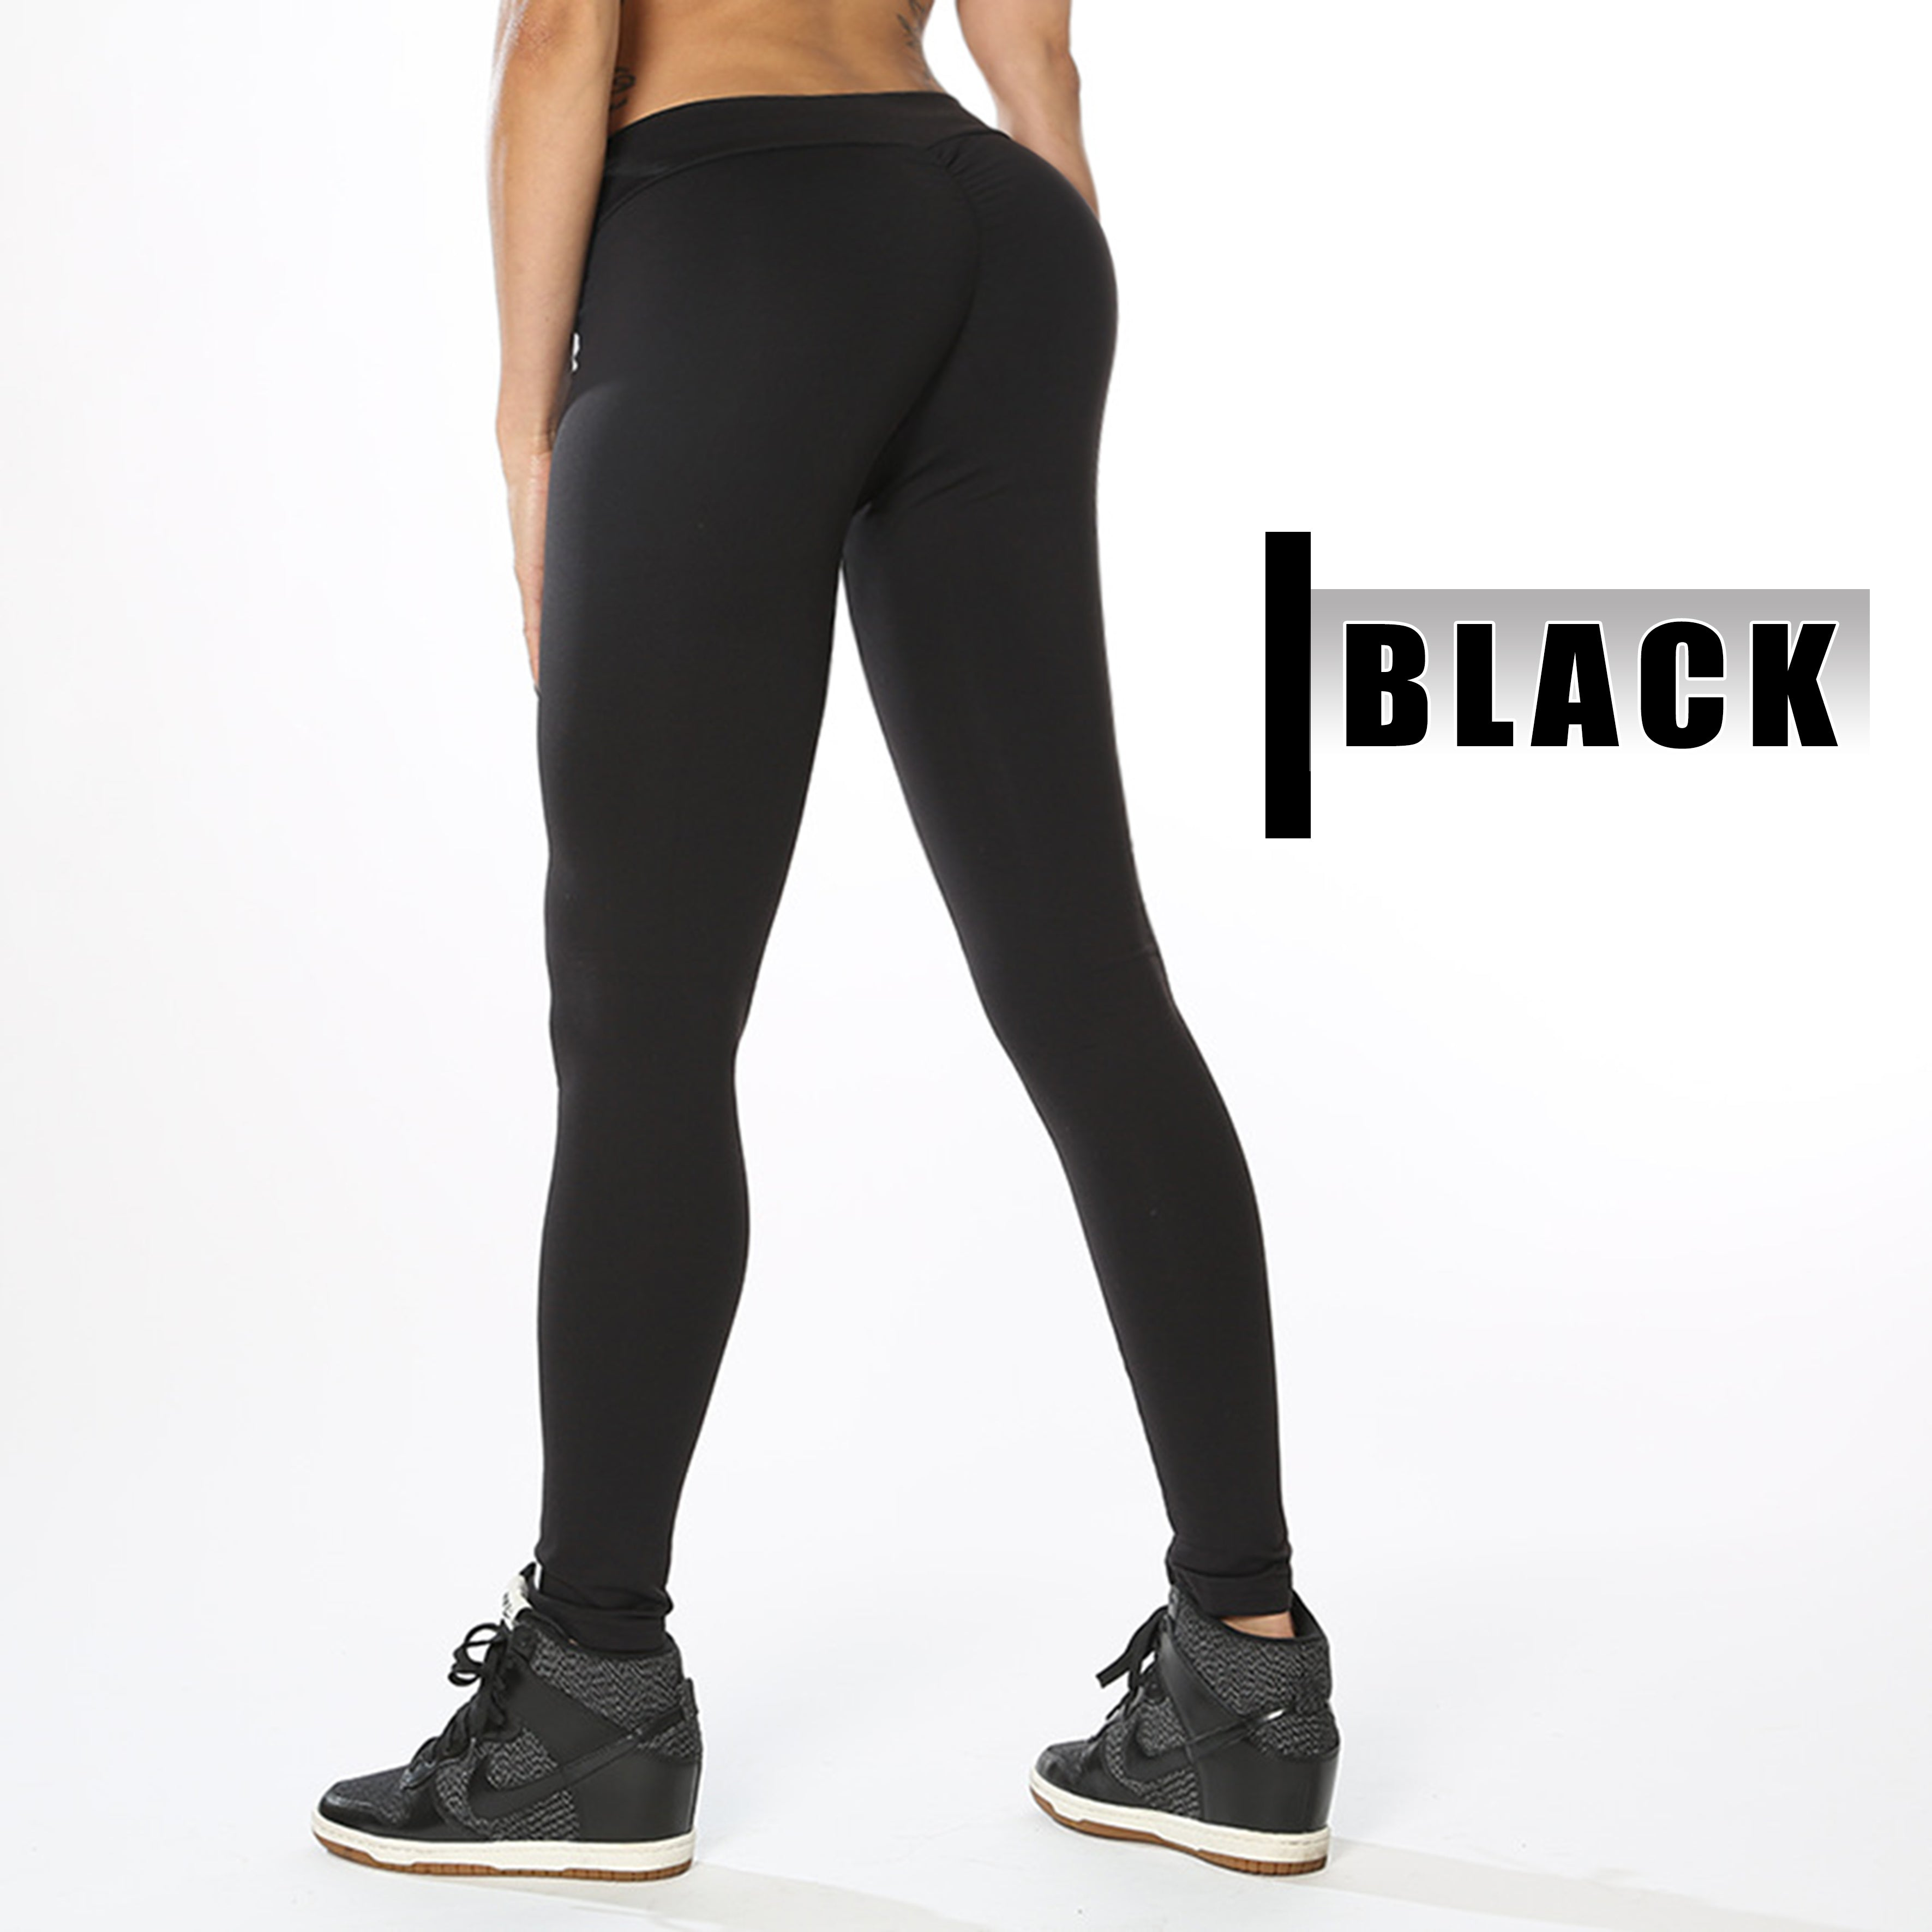 Extra Soft Slim Workout Leggings Yoga Pants